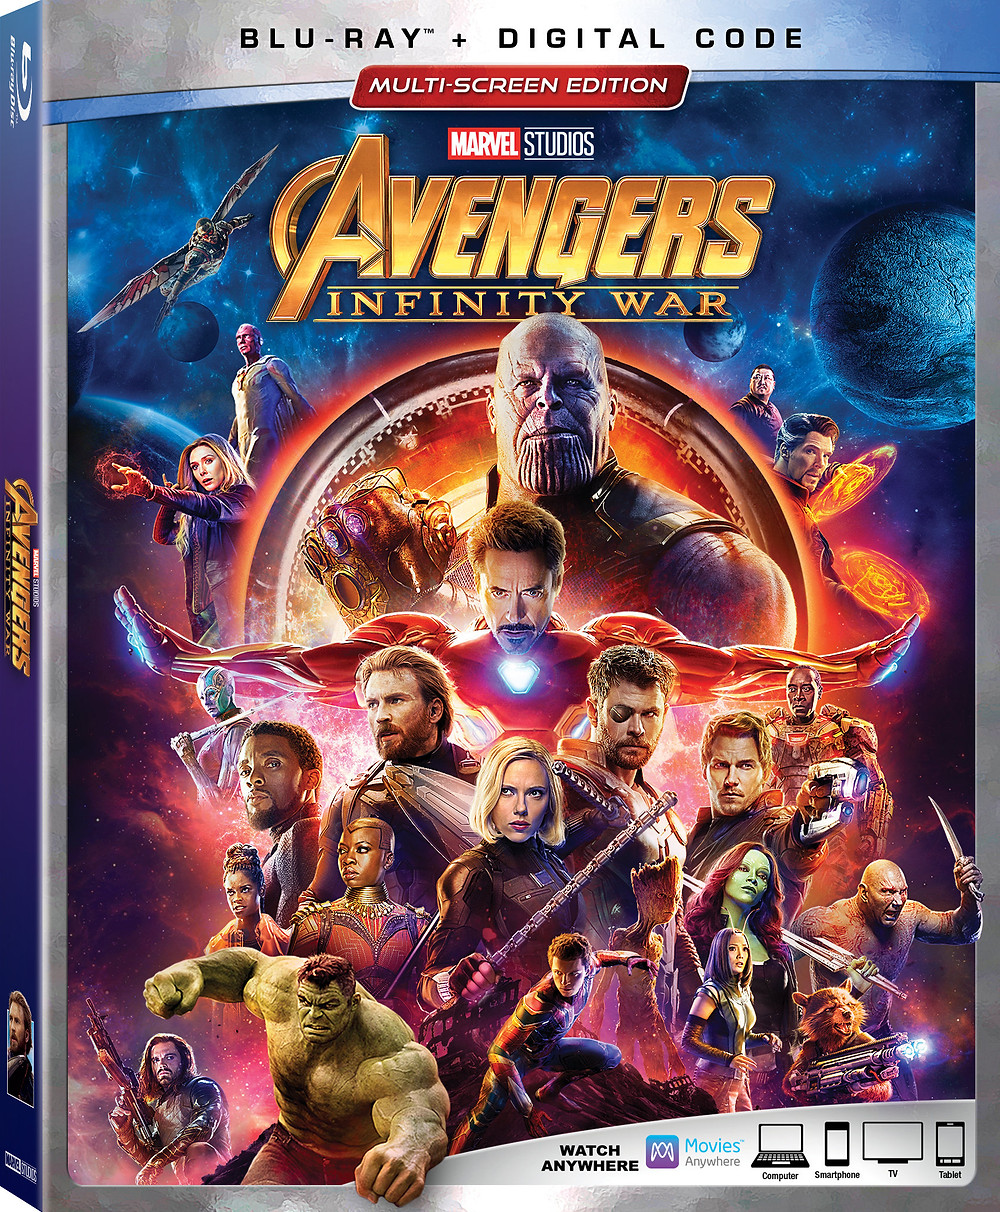 Avengers Infinity War Box Art